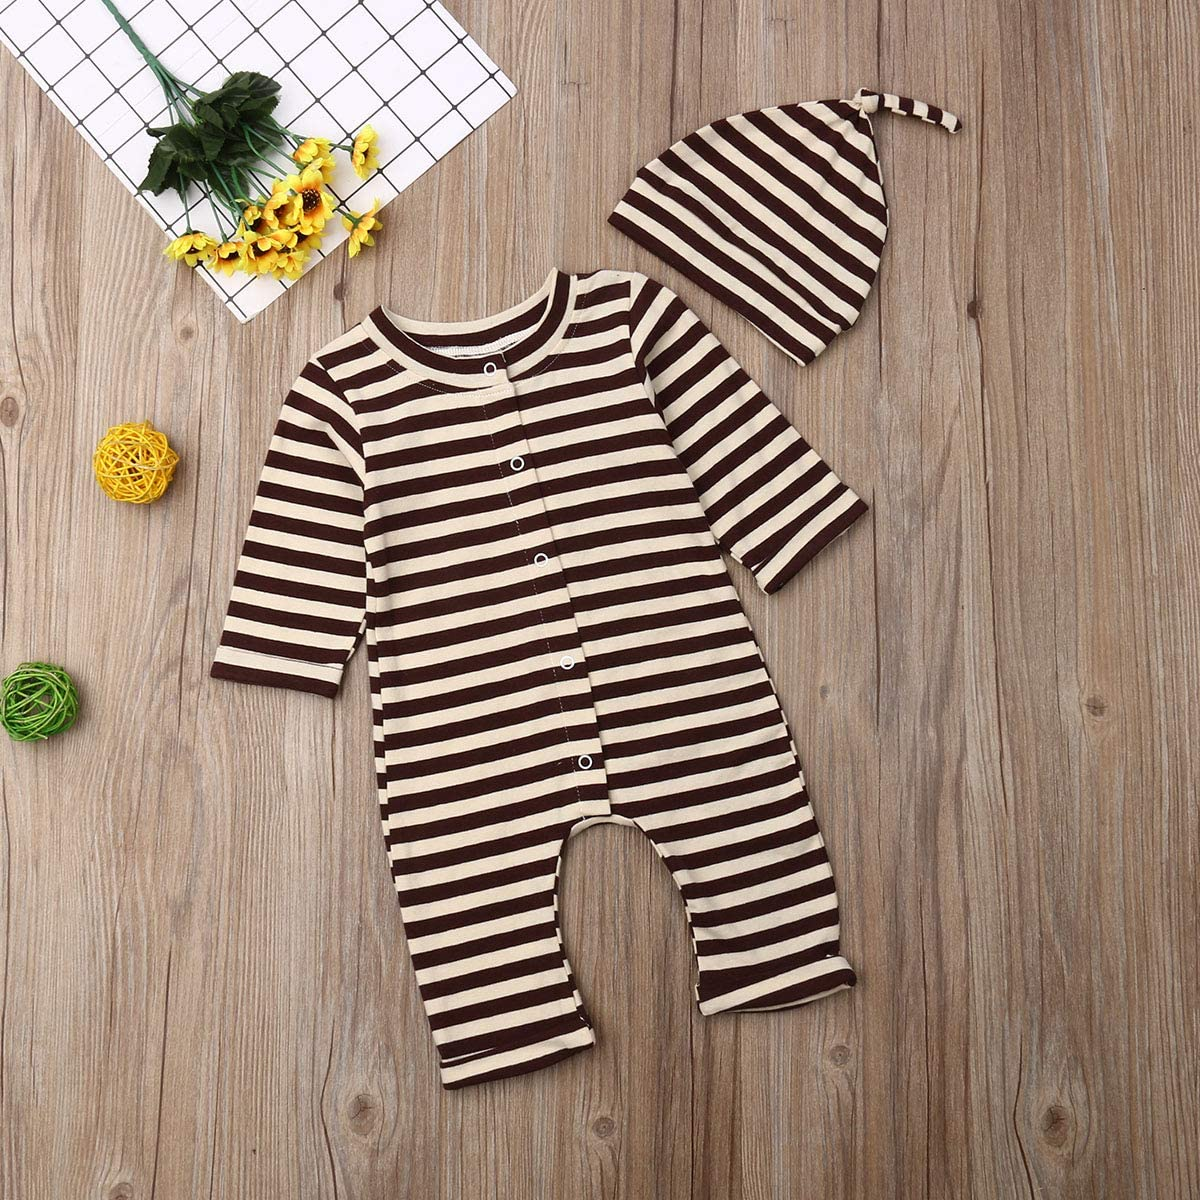 Baby Boy Jumpsuit Knitted Button Solid Long Sleeve Infant Boys Romper One Piece Bodysuit Newborn Girls Clothes Outfits